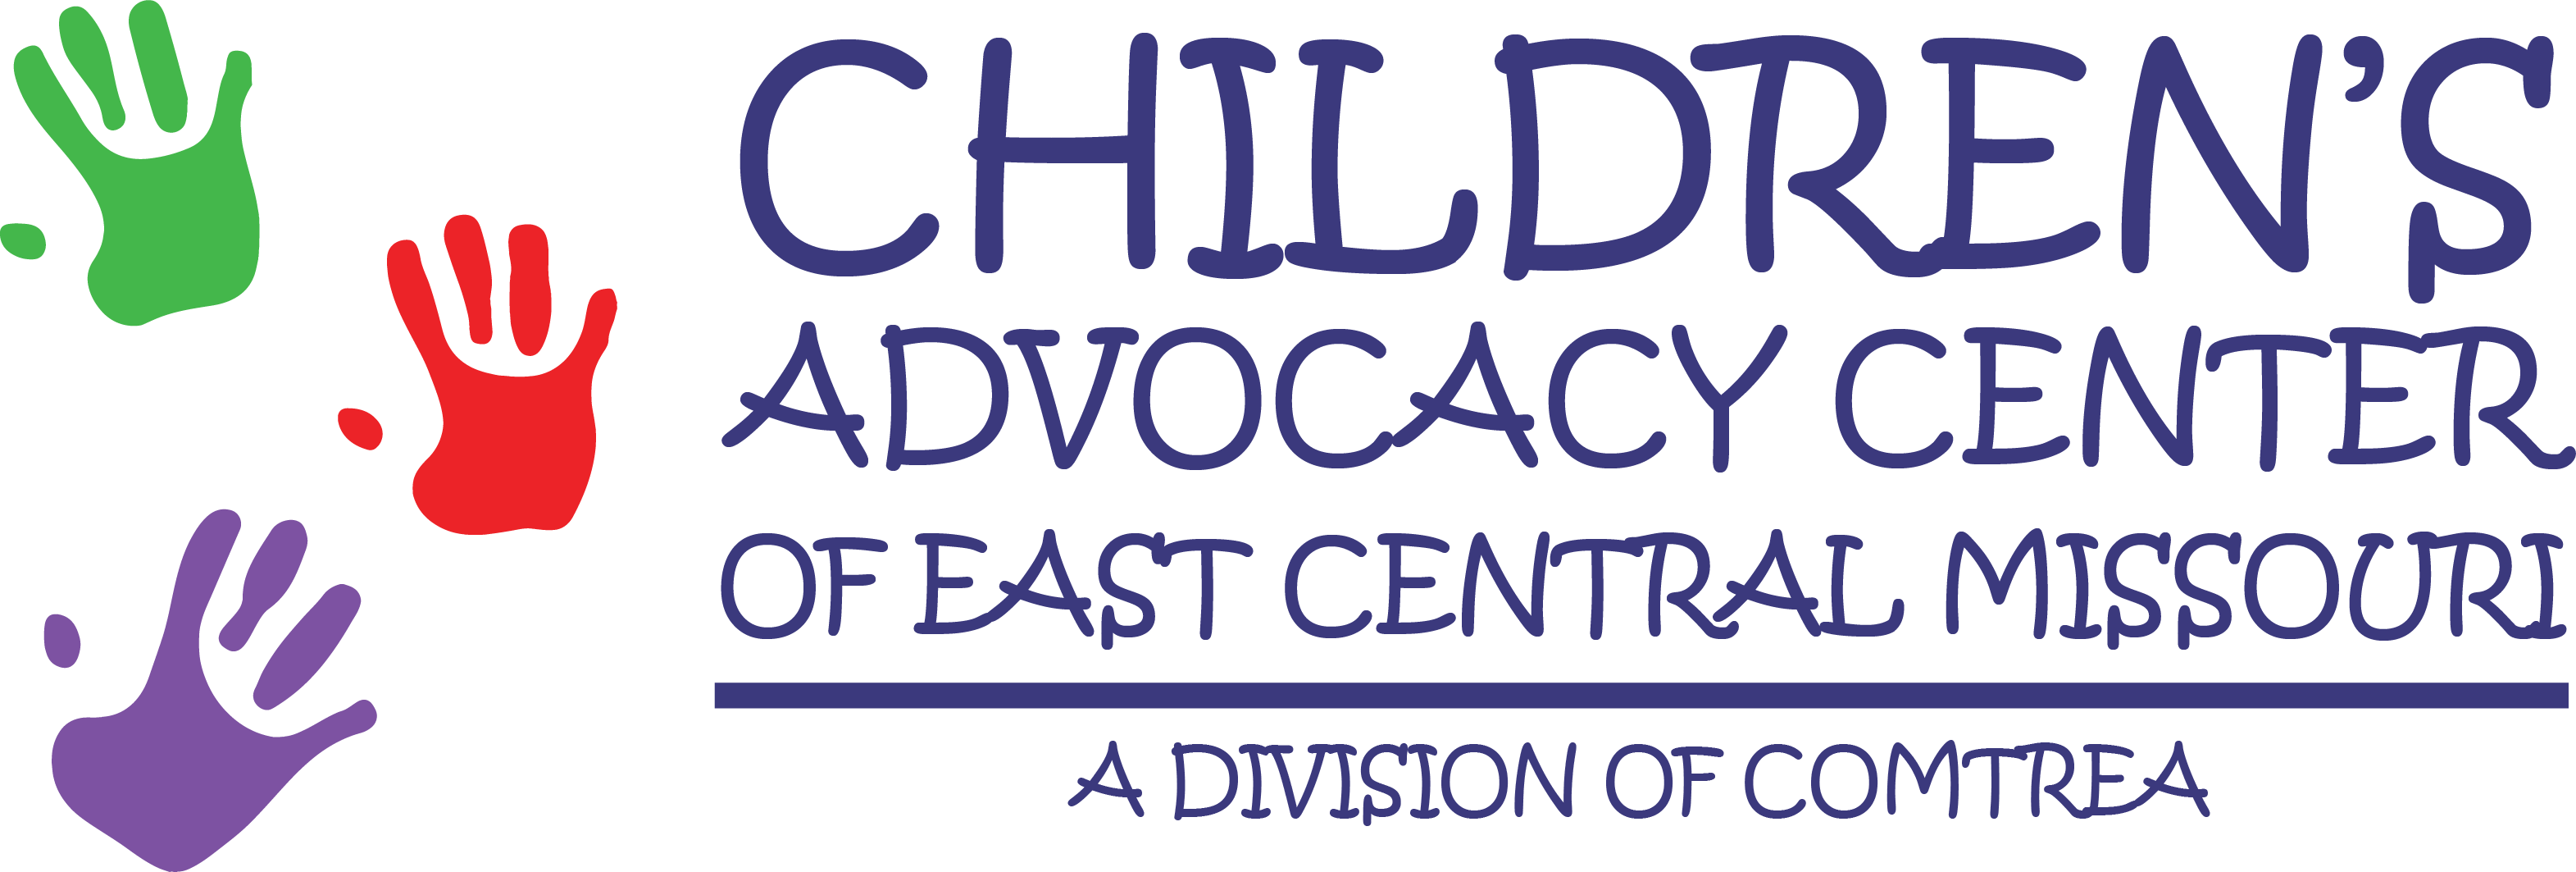 Logo for Children's Advocacy Center of East Central Missouri. A division of COMTREA.